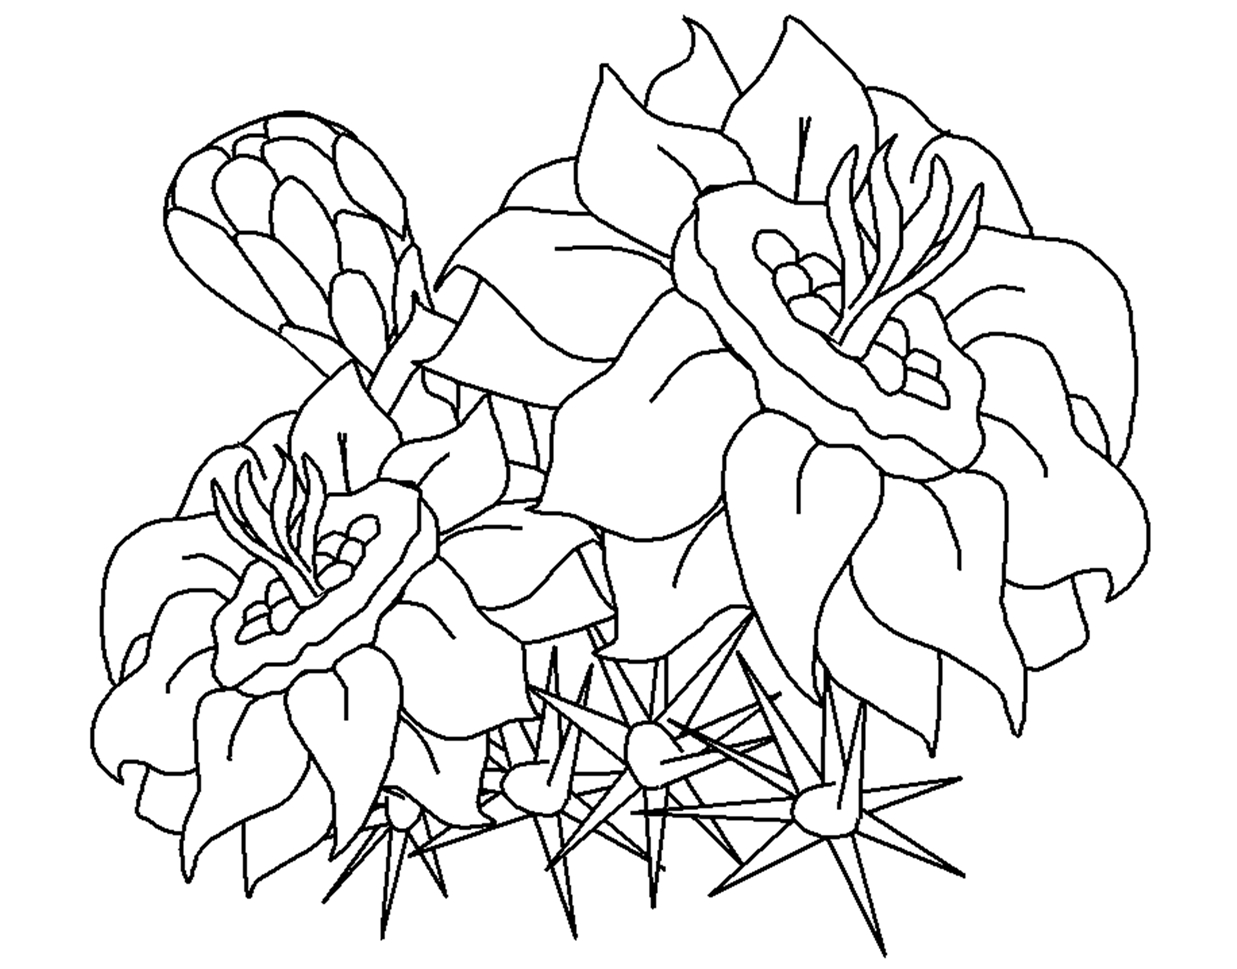 printable flowers to color roses flowers coloring page free printable coloring pages flowers color to printable